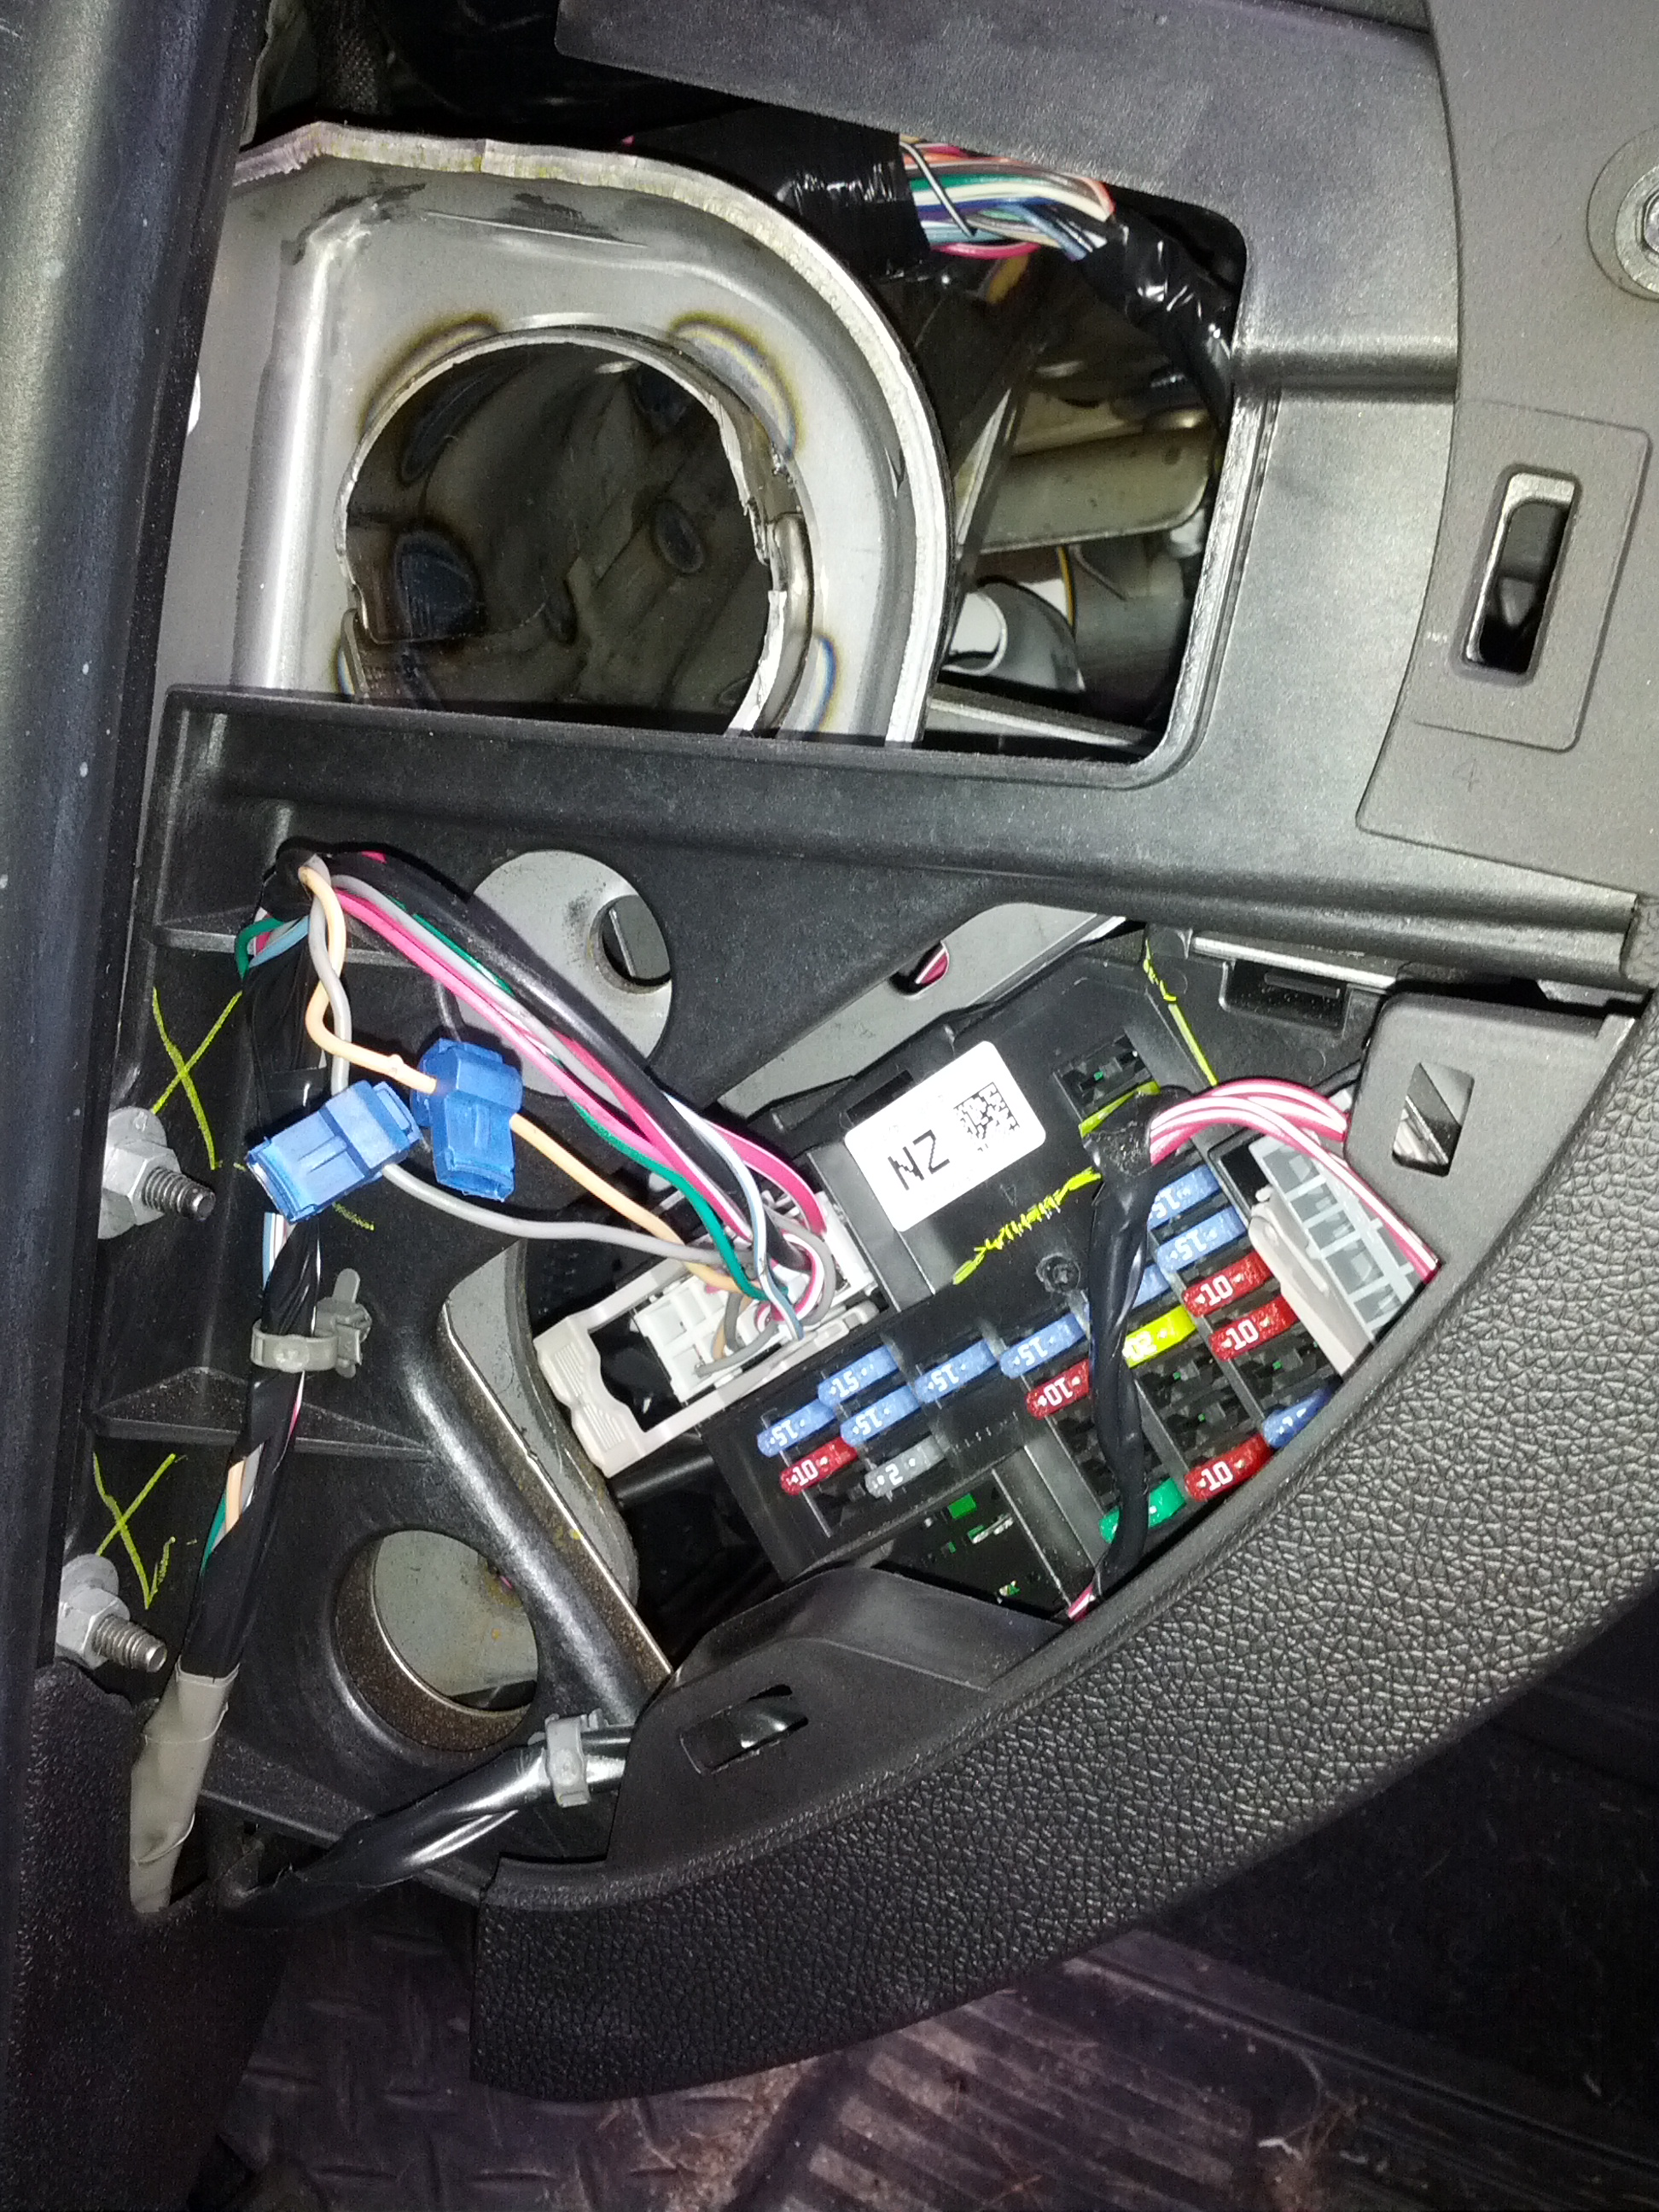 2012 Toyota Highlander Wiring Diagram Not Lossing Silverado Trailer 2001 Chevy Harness Radio